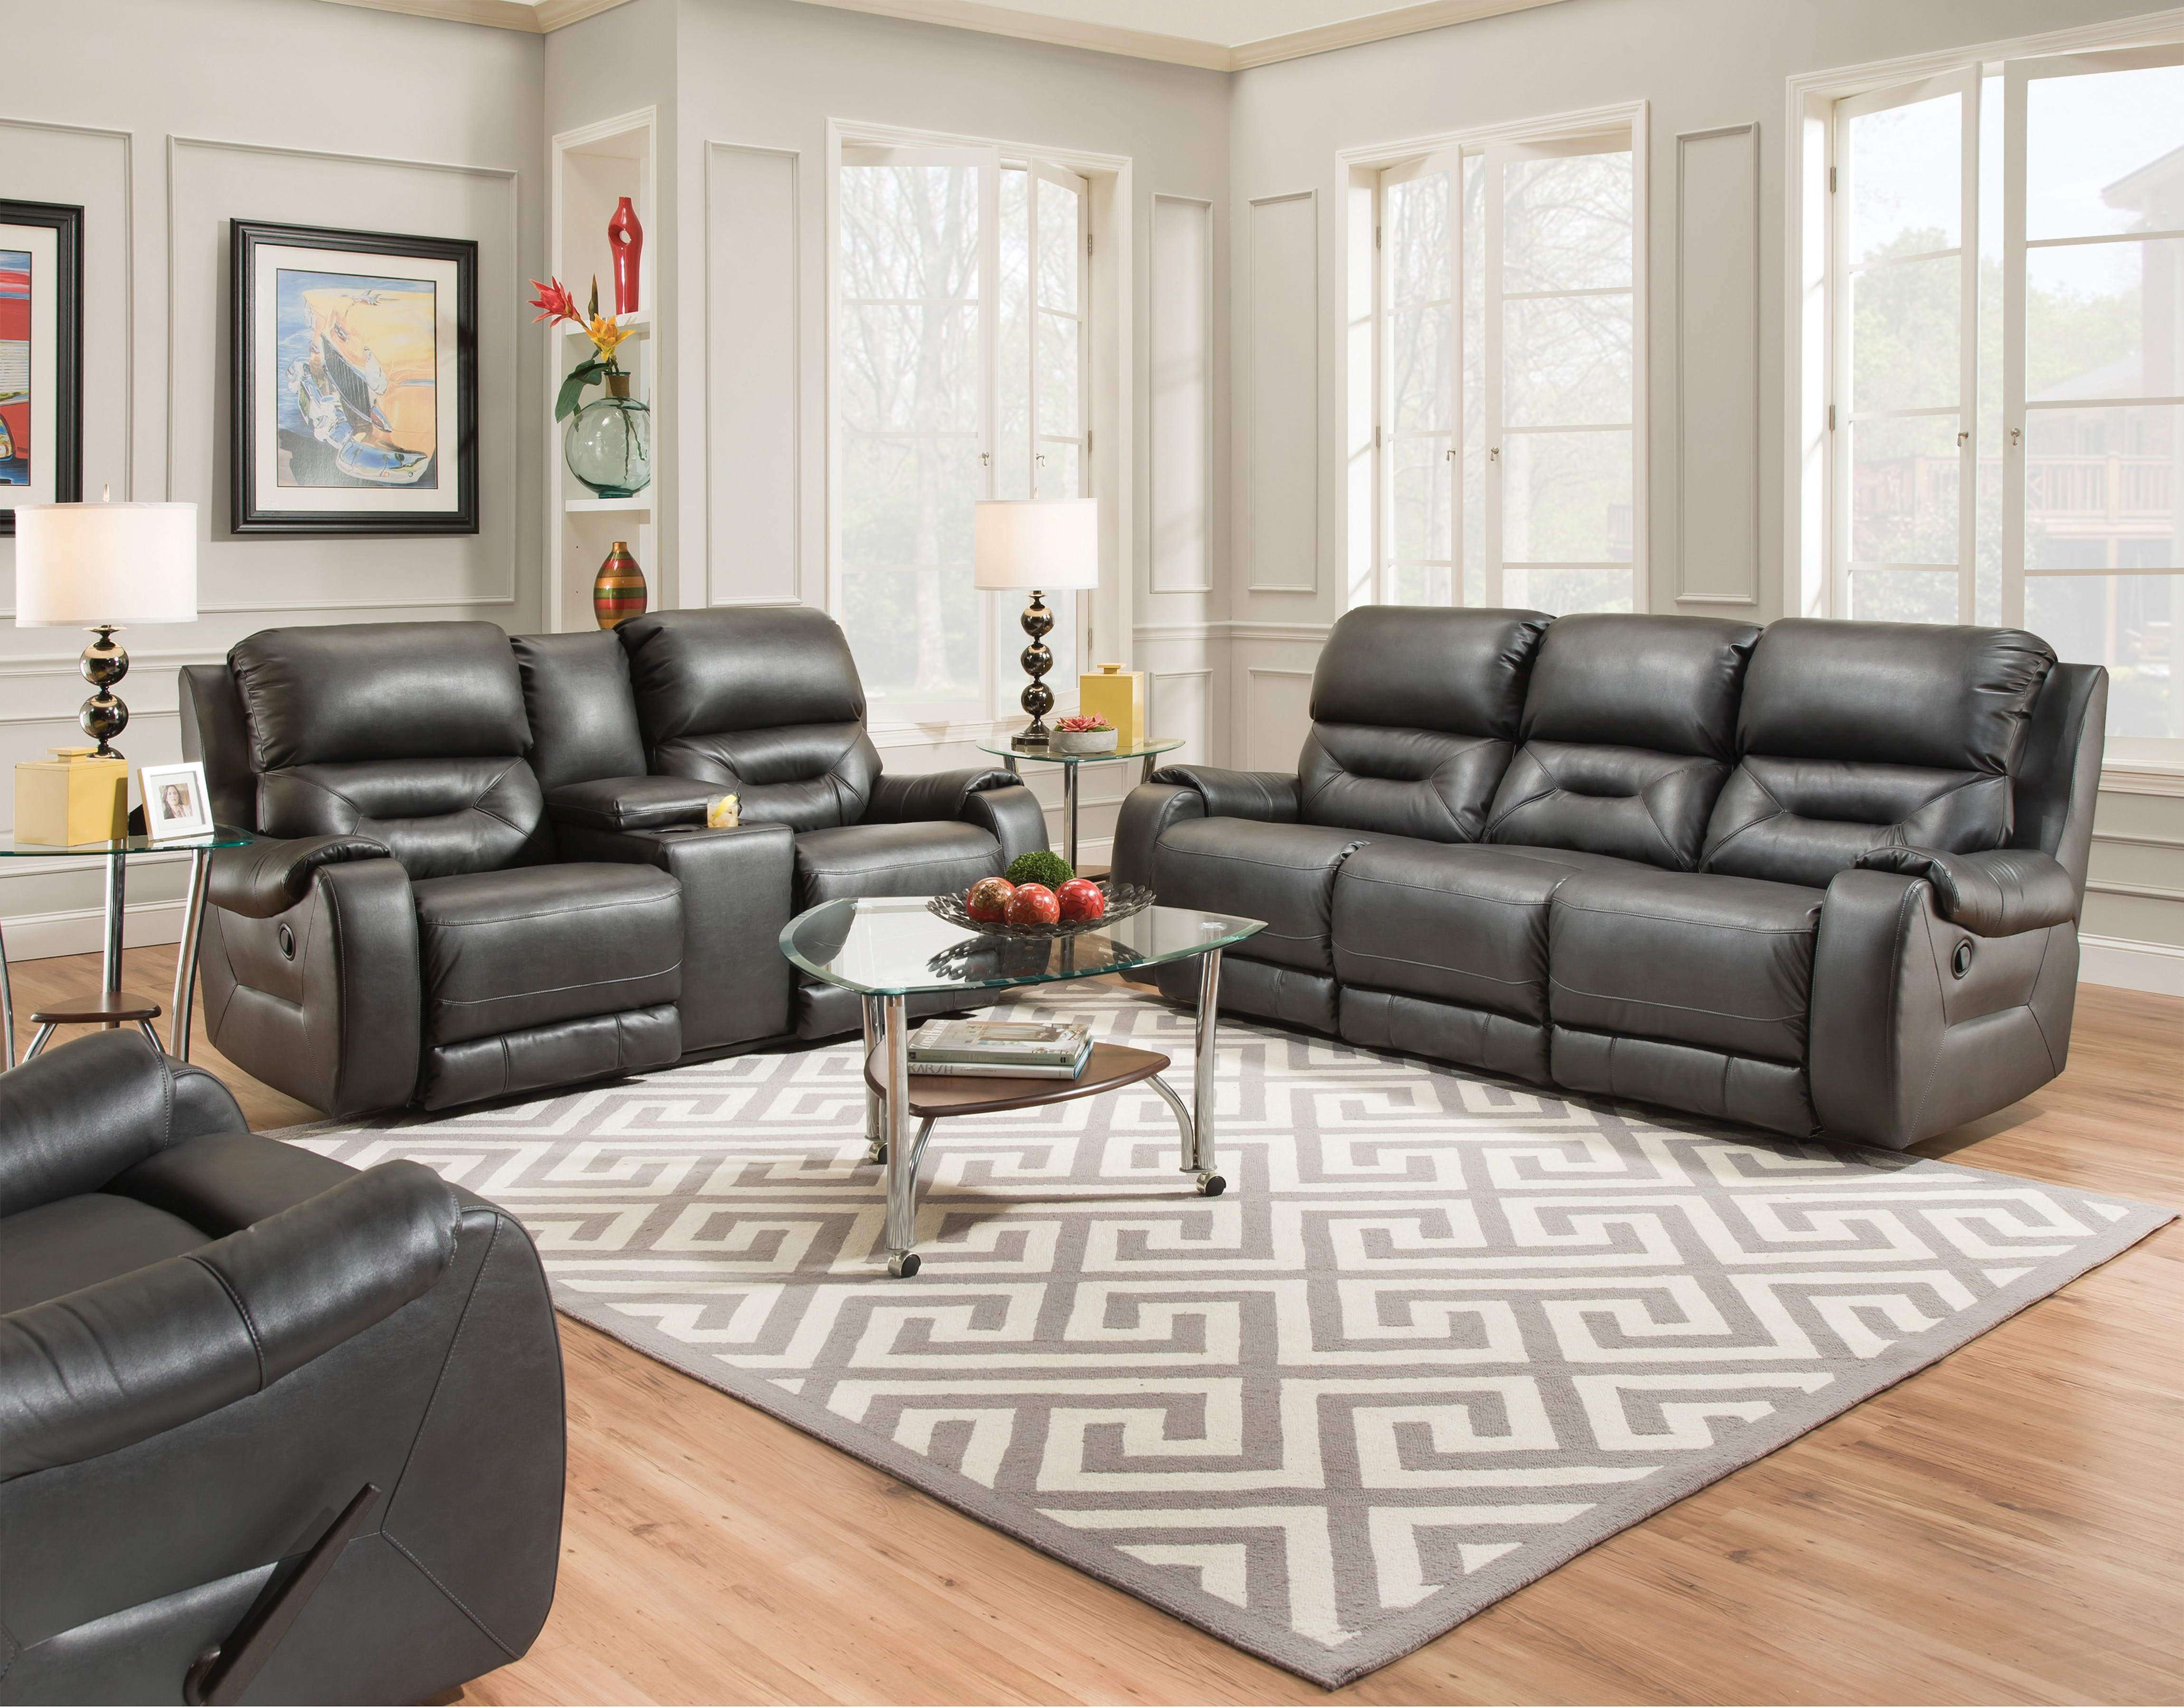 voyager lay flat triple reclining sofa oak tables cheap recliner southern motion living room urban